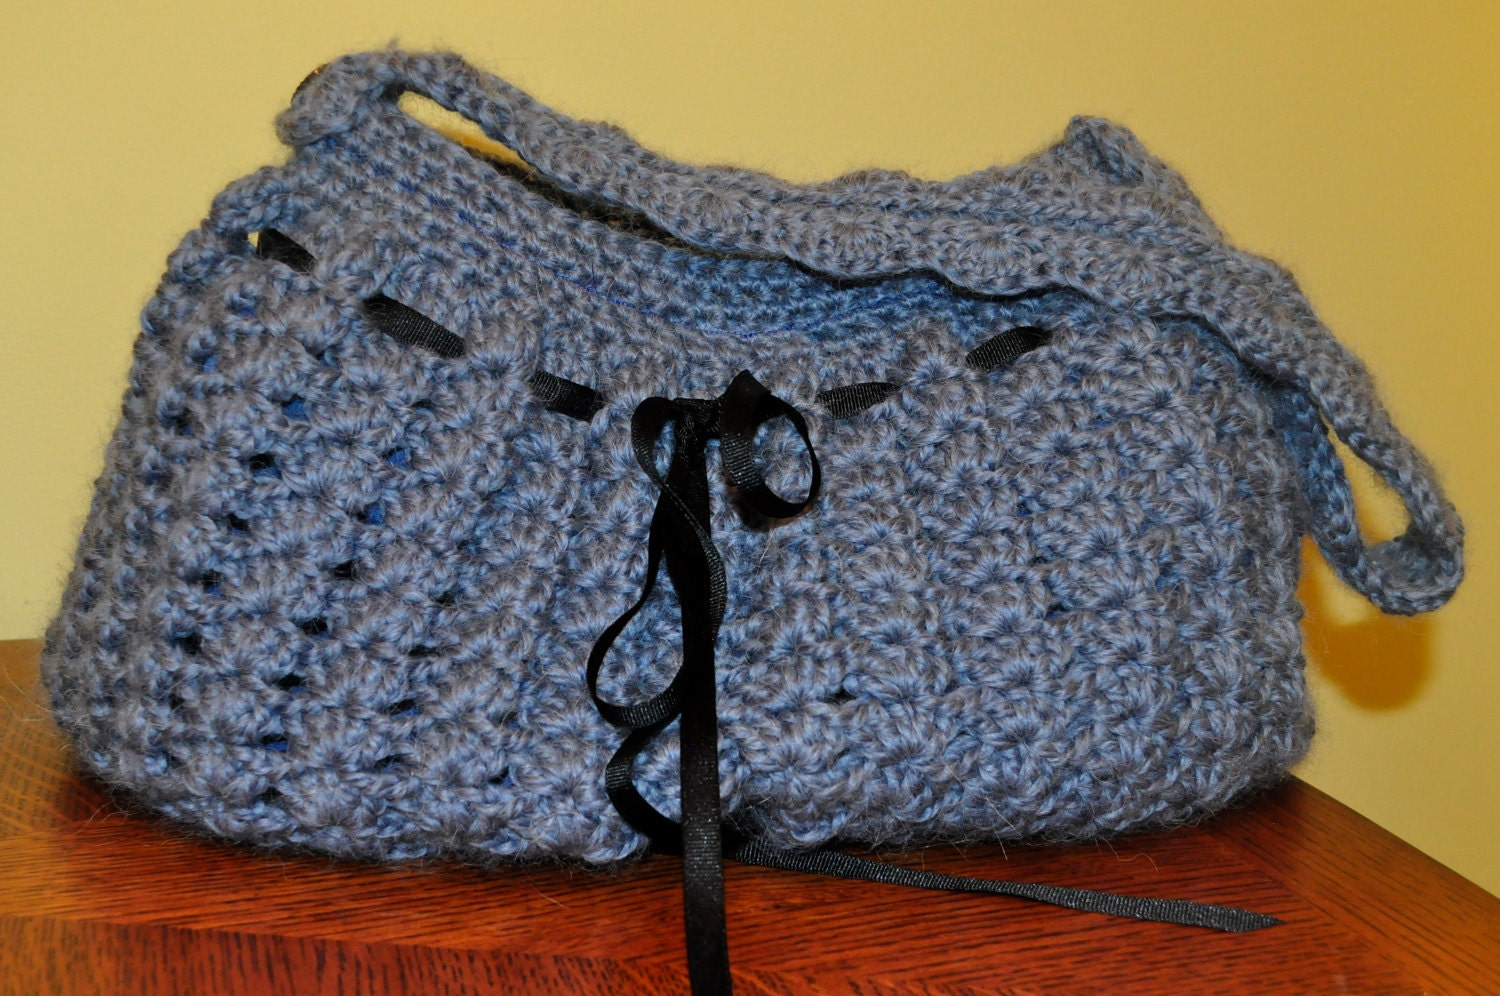 Crochet Hobo Bag Pattern : Crochet Pattern PDF Purse / Bag / Hobo Big by 5PacksCrochet